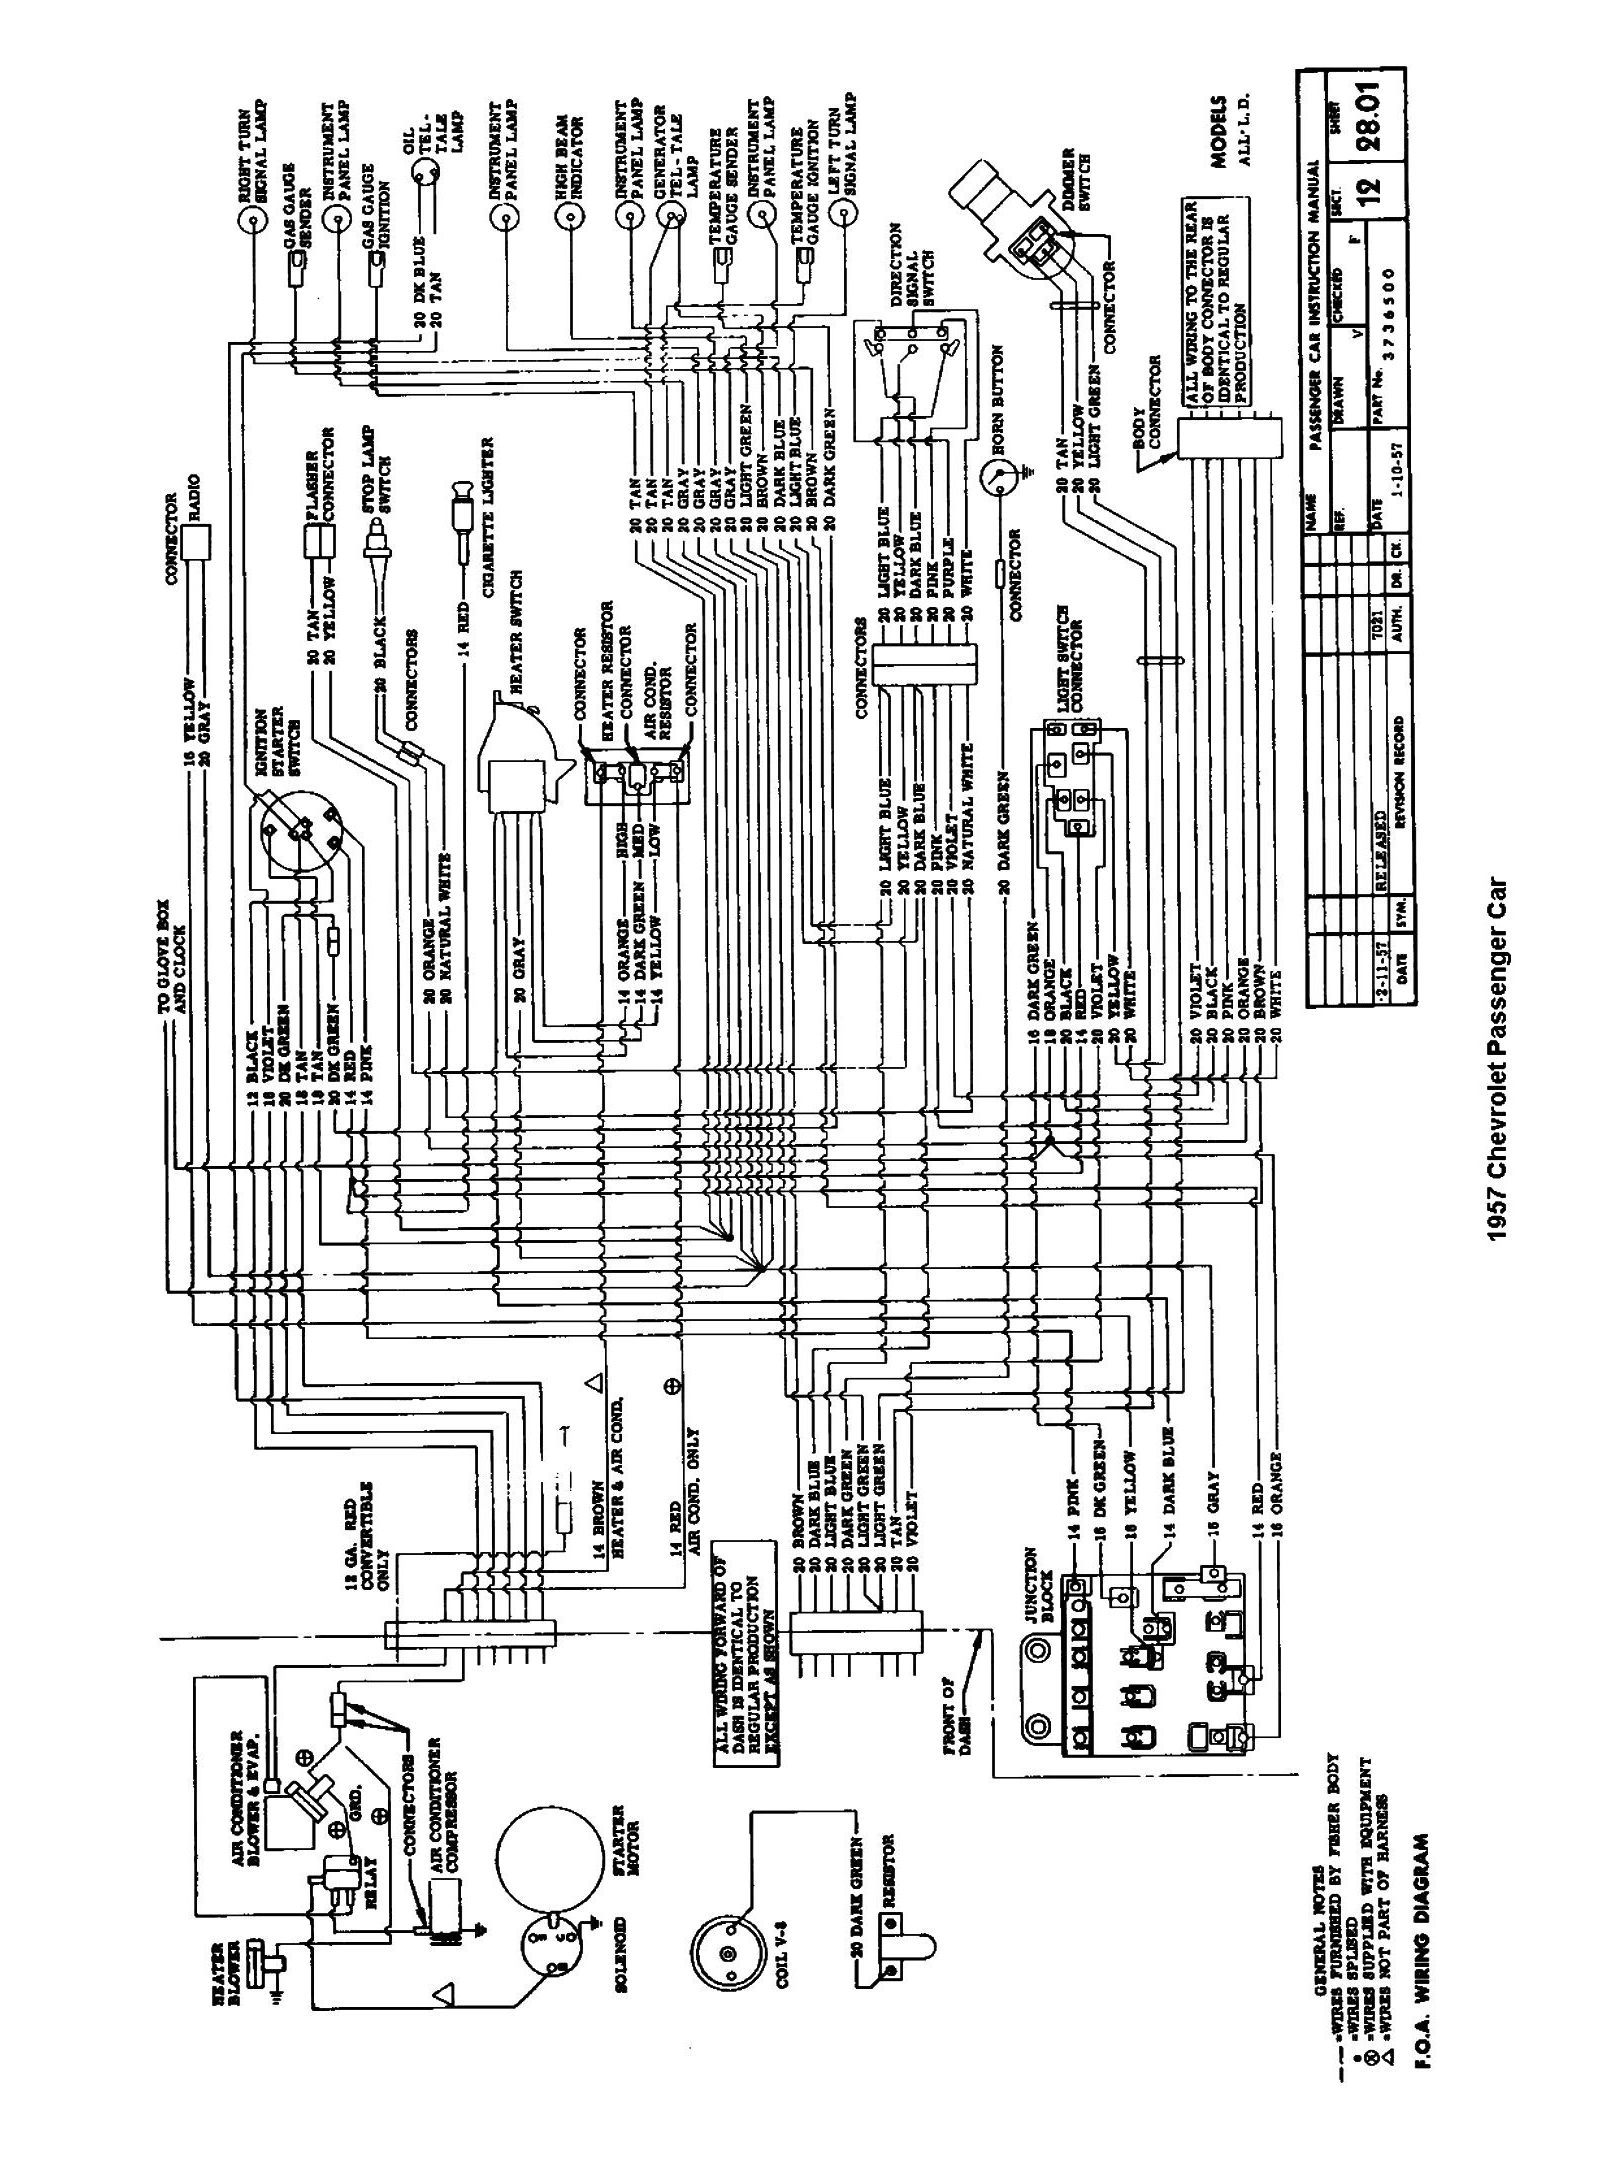 1954 gm turn signal wiring diagram wiring diagrams 1954 chevy blinker wiring wiring diagram